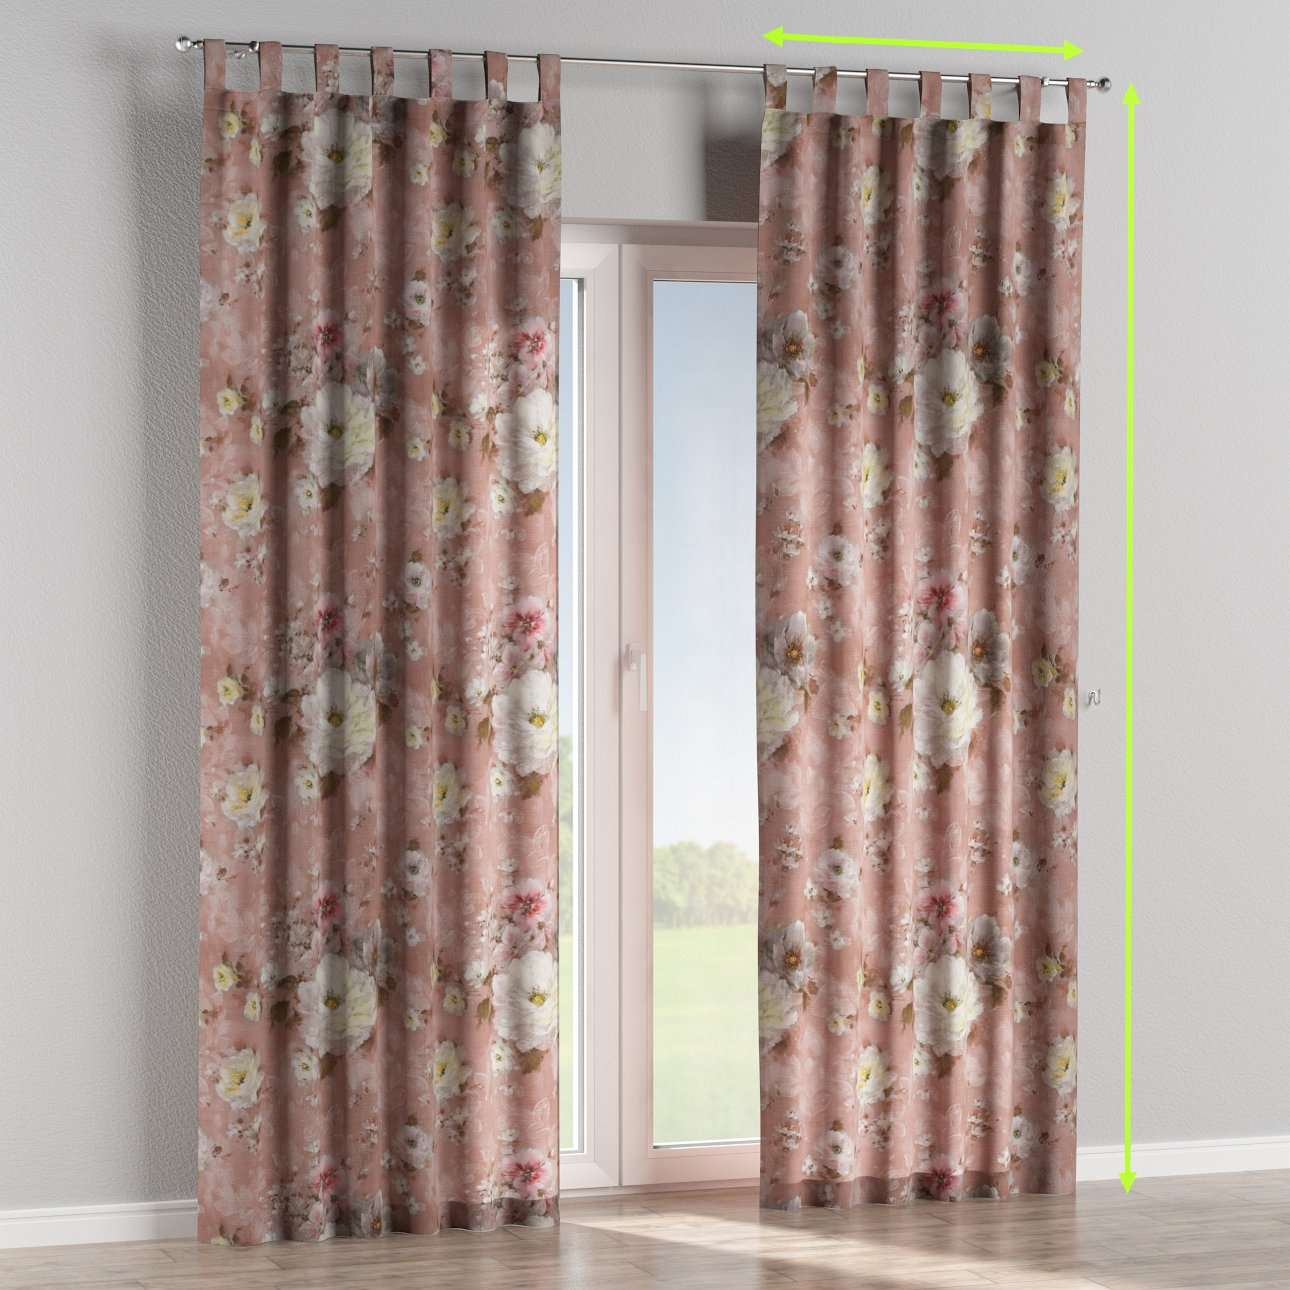 Tab top lined curtains in collection Monet, fabric: 137-83